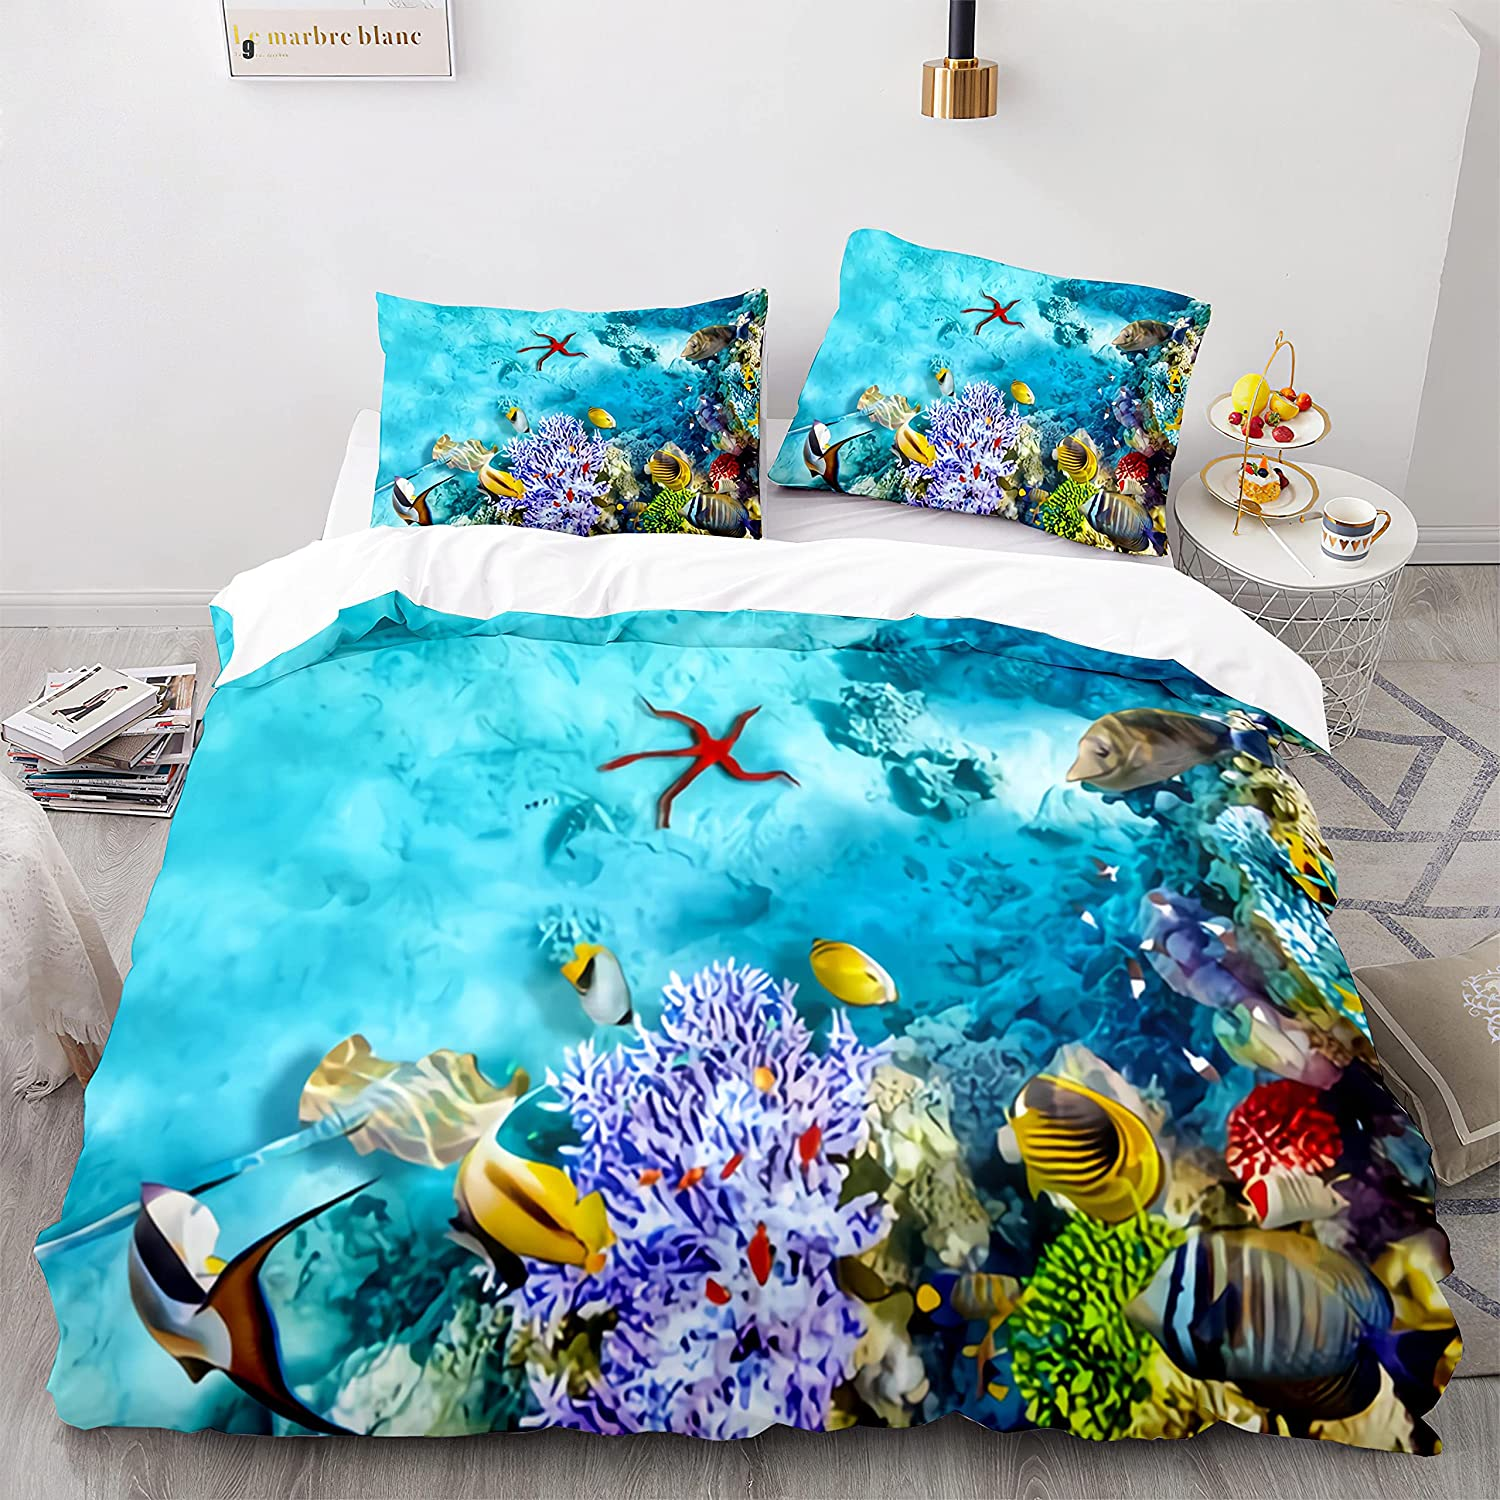 HMT NF Underwater World Marine Life 2021 autumn and winter new Blue Dallas Mall Twin O Set Size Bedding